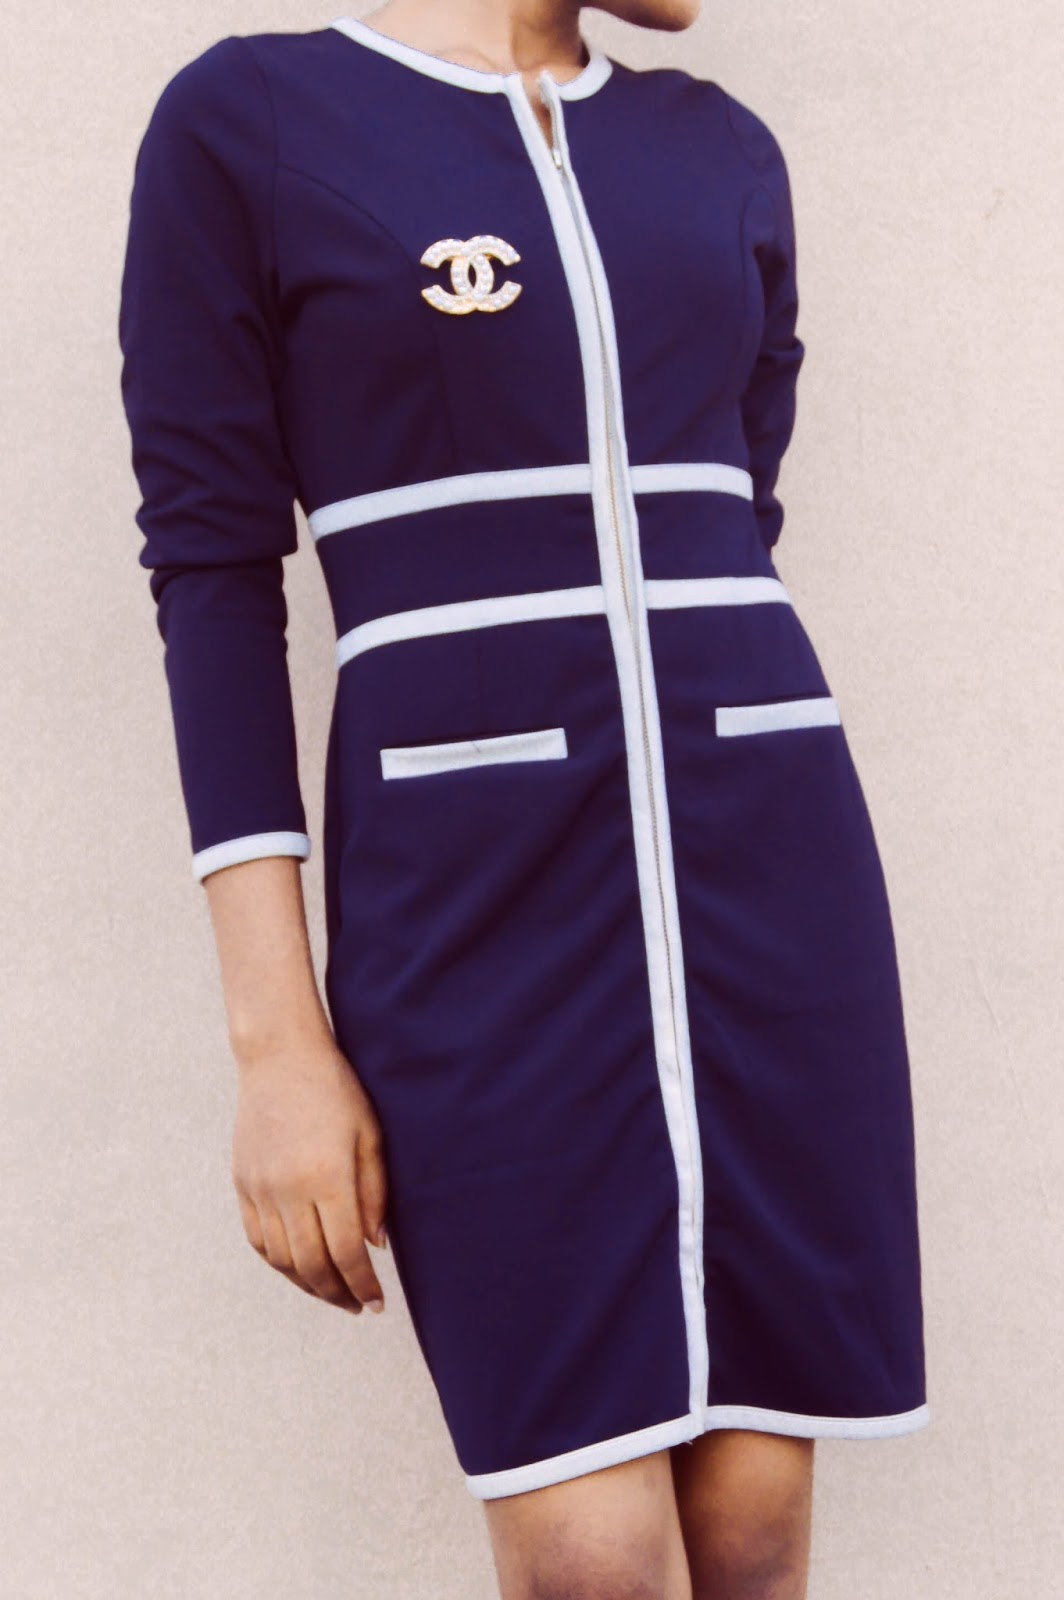 navy blue and white zip up dress with a chanel brooch, oncedarplanet, Cedar